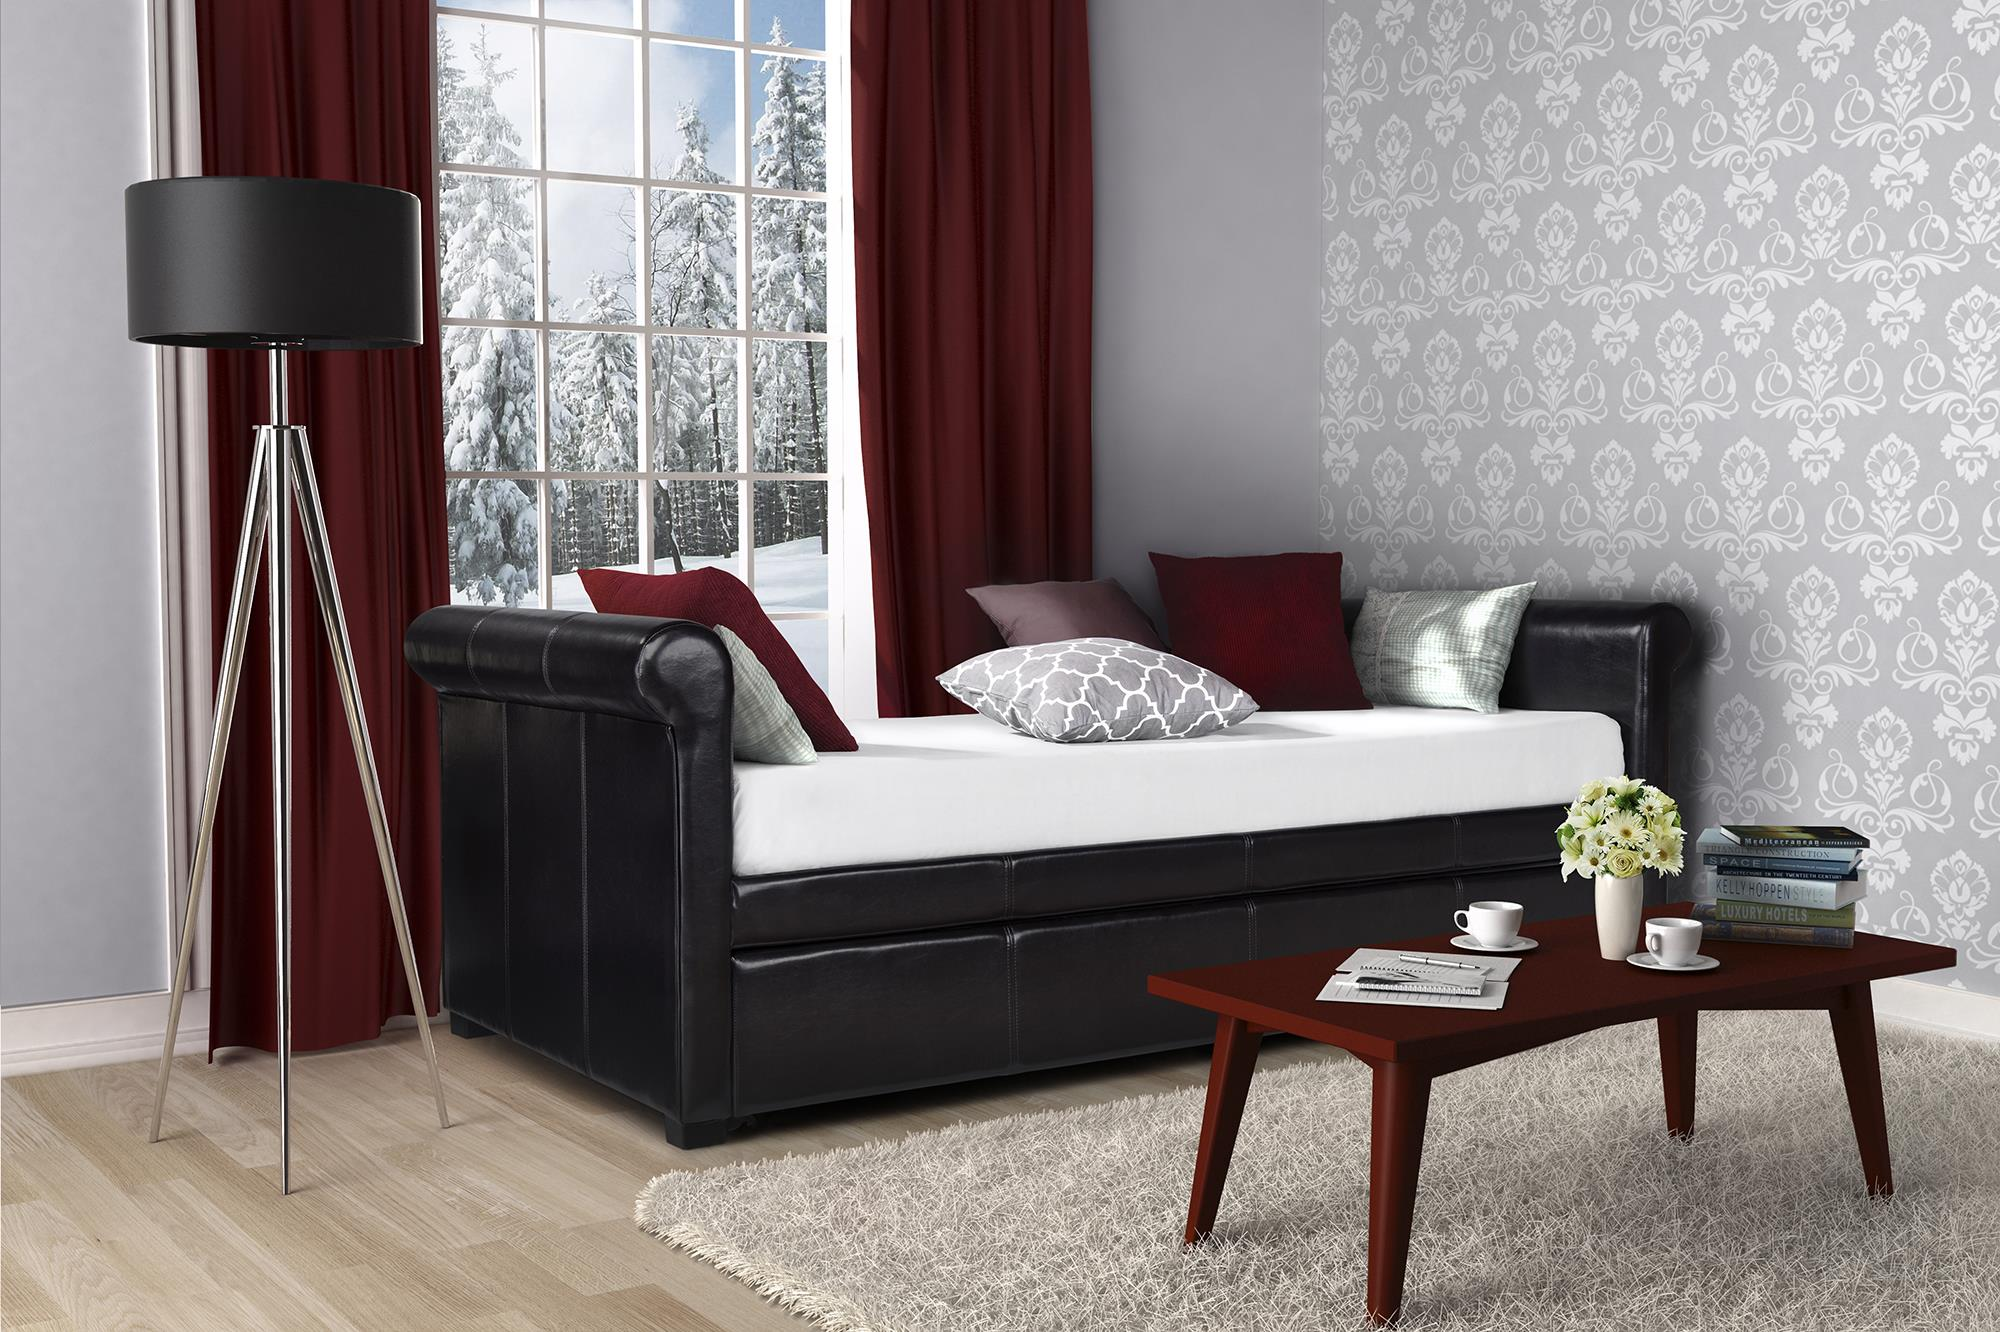 DHP Giada Upholstered Faux Leather Day Bed and Trundle, Brown by Dorel Home Products